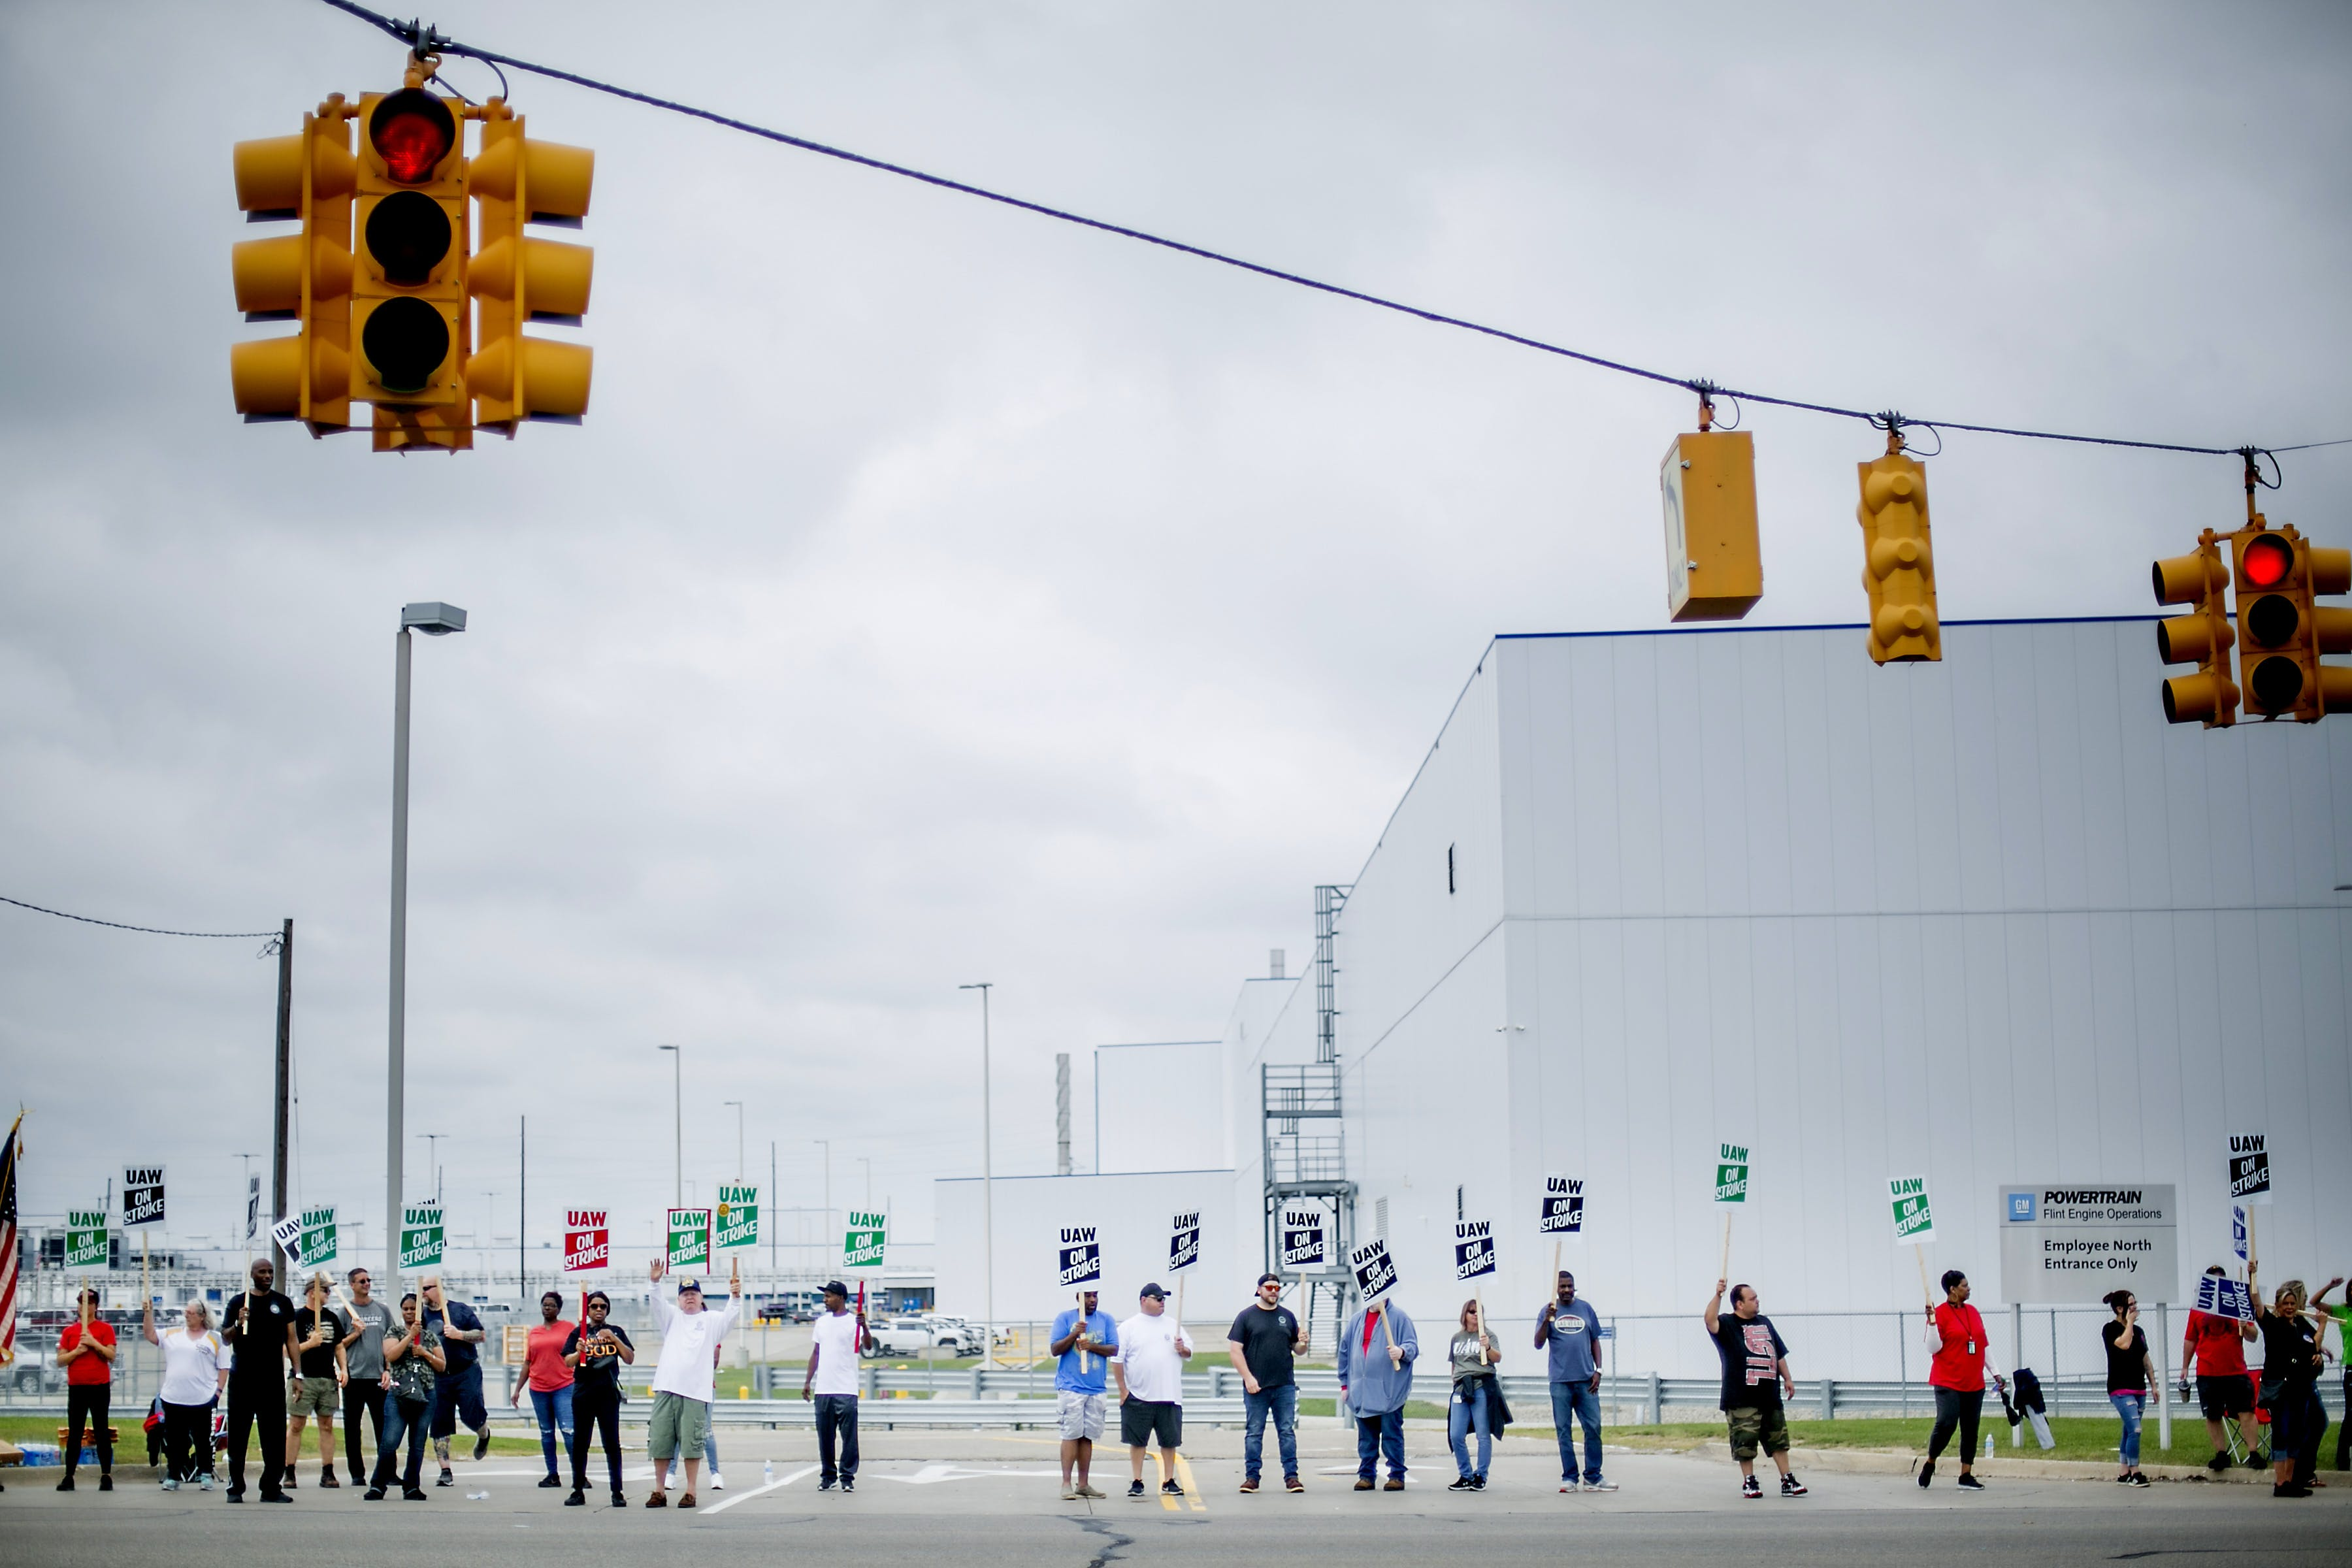 Demonstrators holds signs during a United Auto Workers (UAW) strike outside the General Motors Co. Flint Engine Operations plant in Flint, Michigan, U.S., on Monday, Sept. 16, 2019. The UAW union is leading its first strike against General Motors in 12 years, digging in for a fight over jobs and benefits that could cost the carmaker dearly for an indefinite period. Photographer: Anthony Lanzilote/Bloomberg via Getty Images